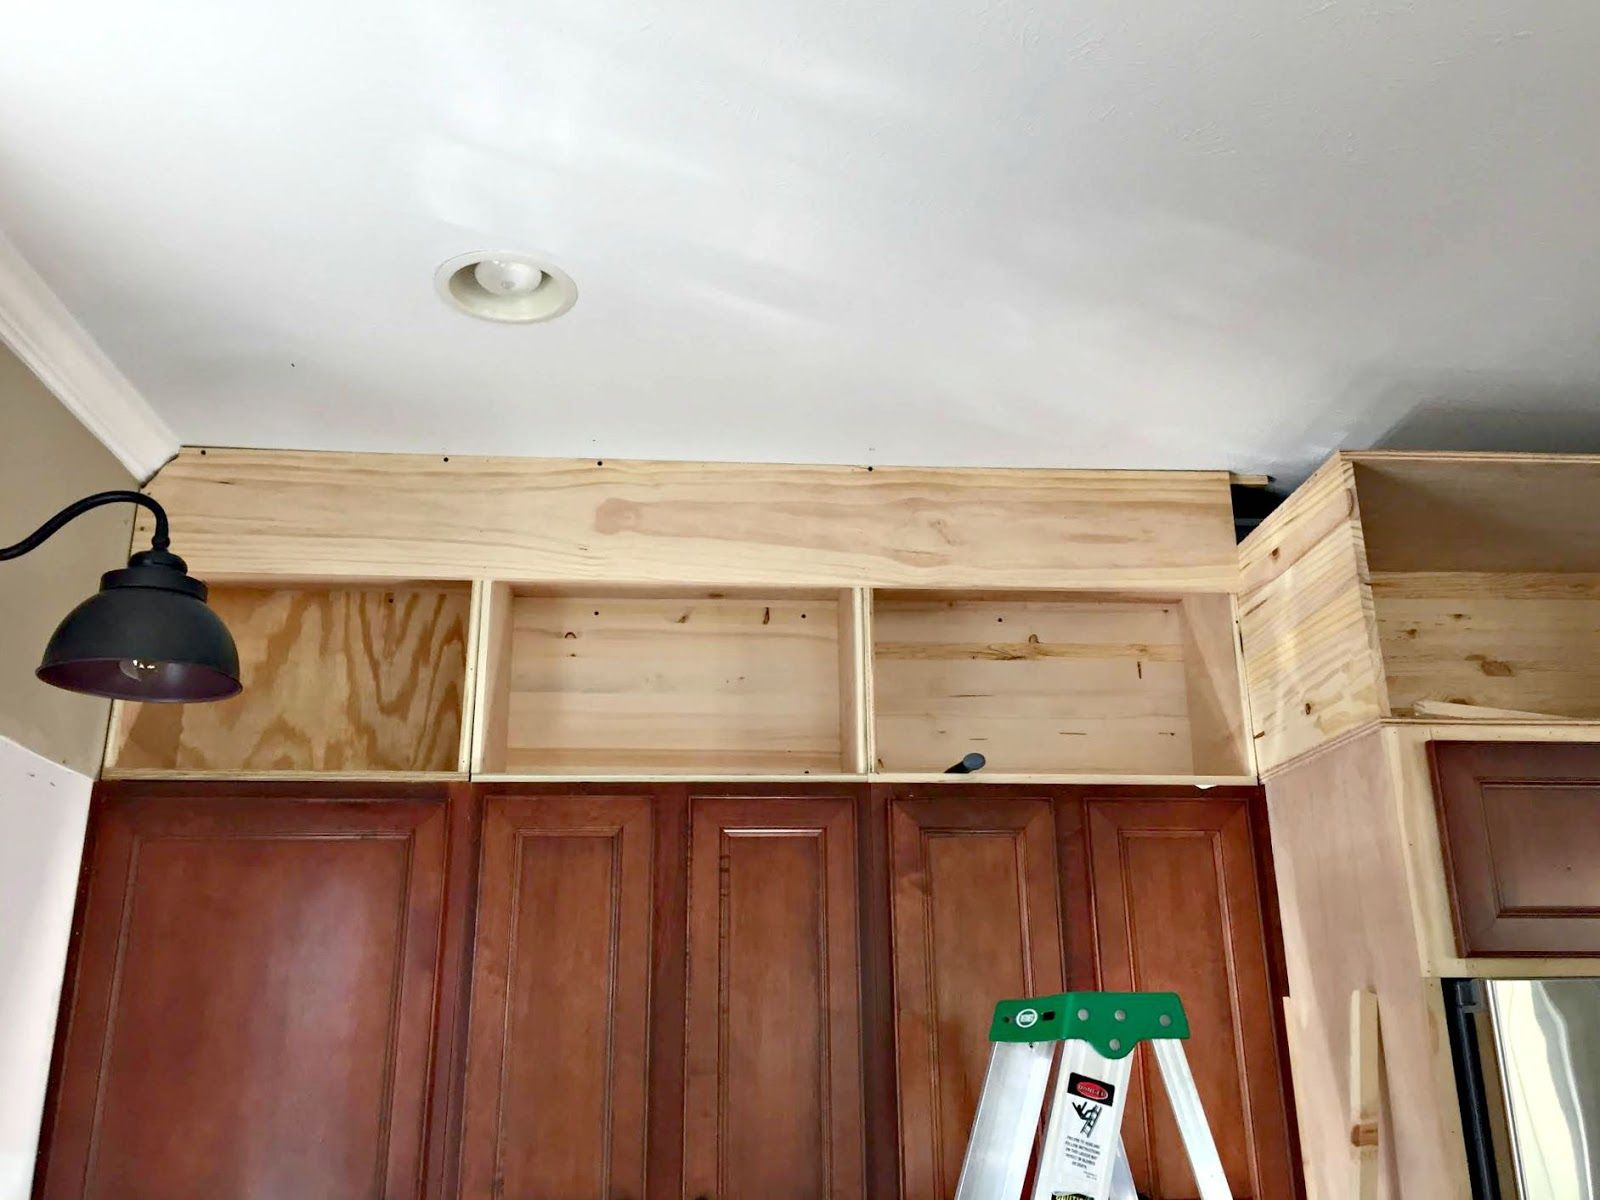 Building Cabinets up to the Ceiling